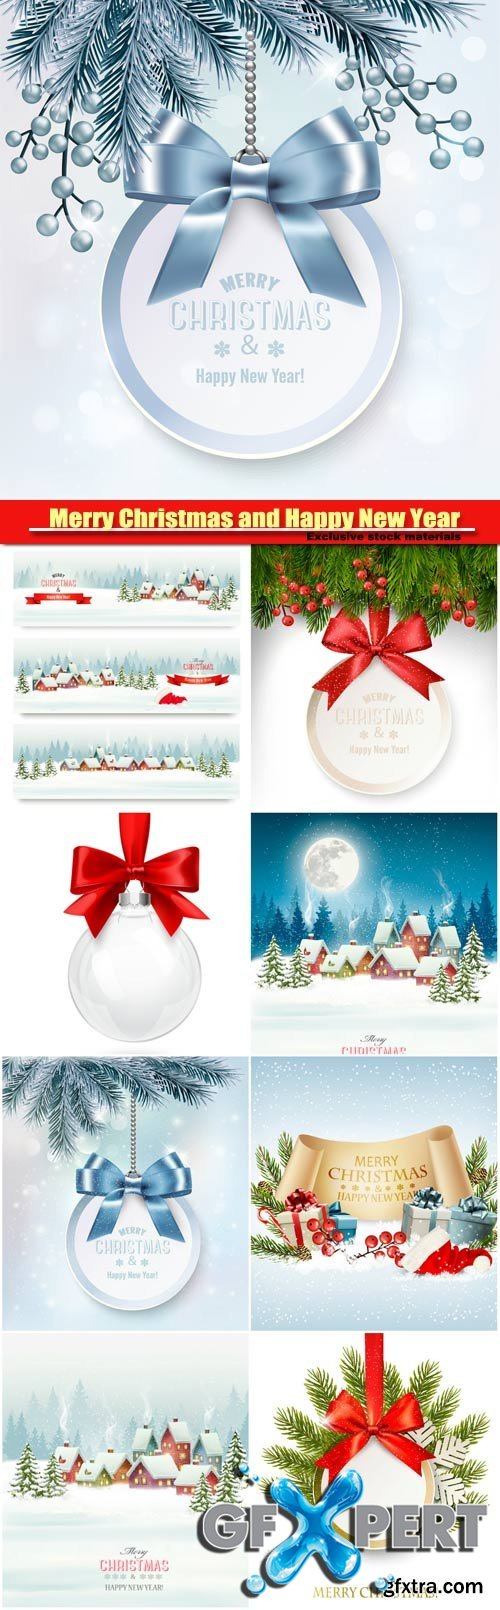 Merry Christmas and Happy New Year vector, background with a gift card and branches of tree